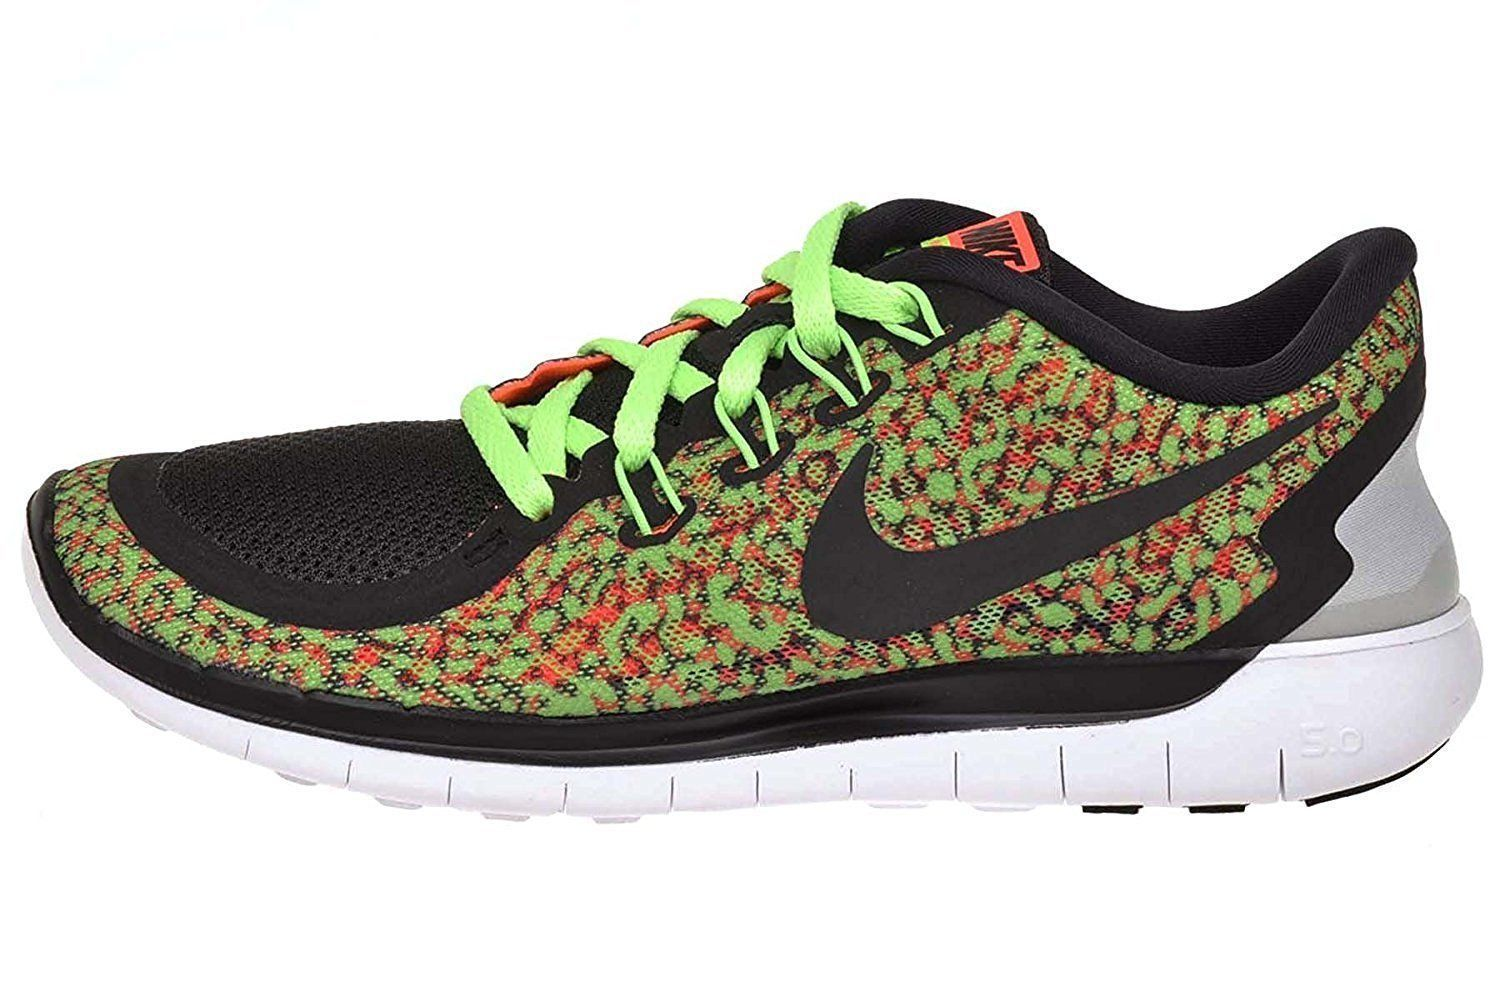 a917330b4d9d Nike Womens Free 5.0 Print Running Shoes and similar items. S l1600